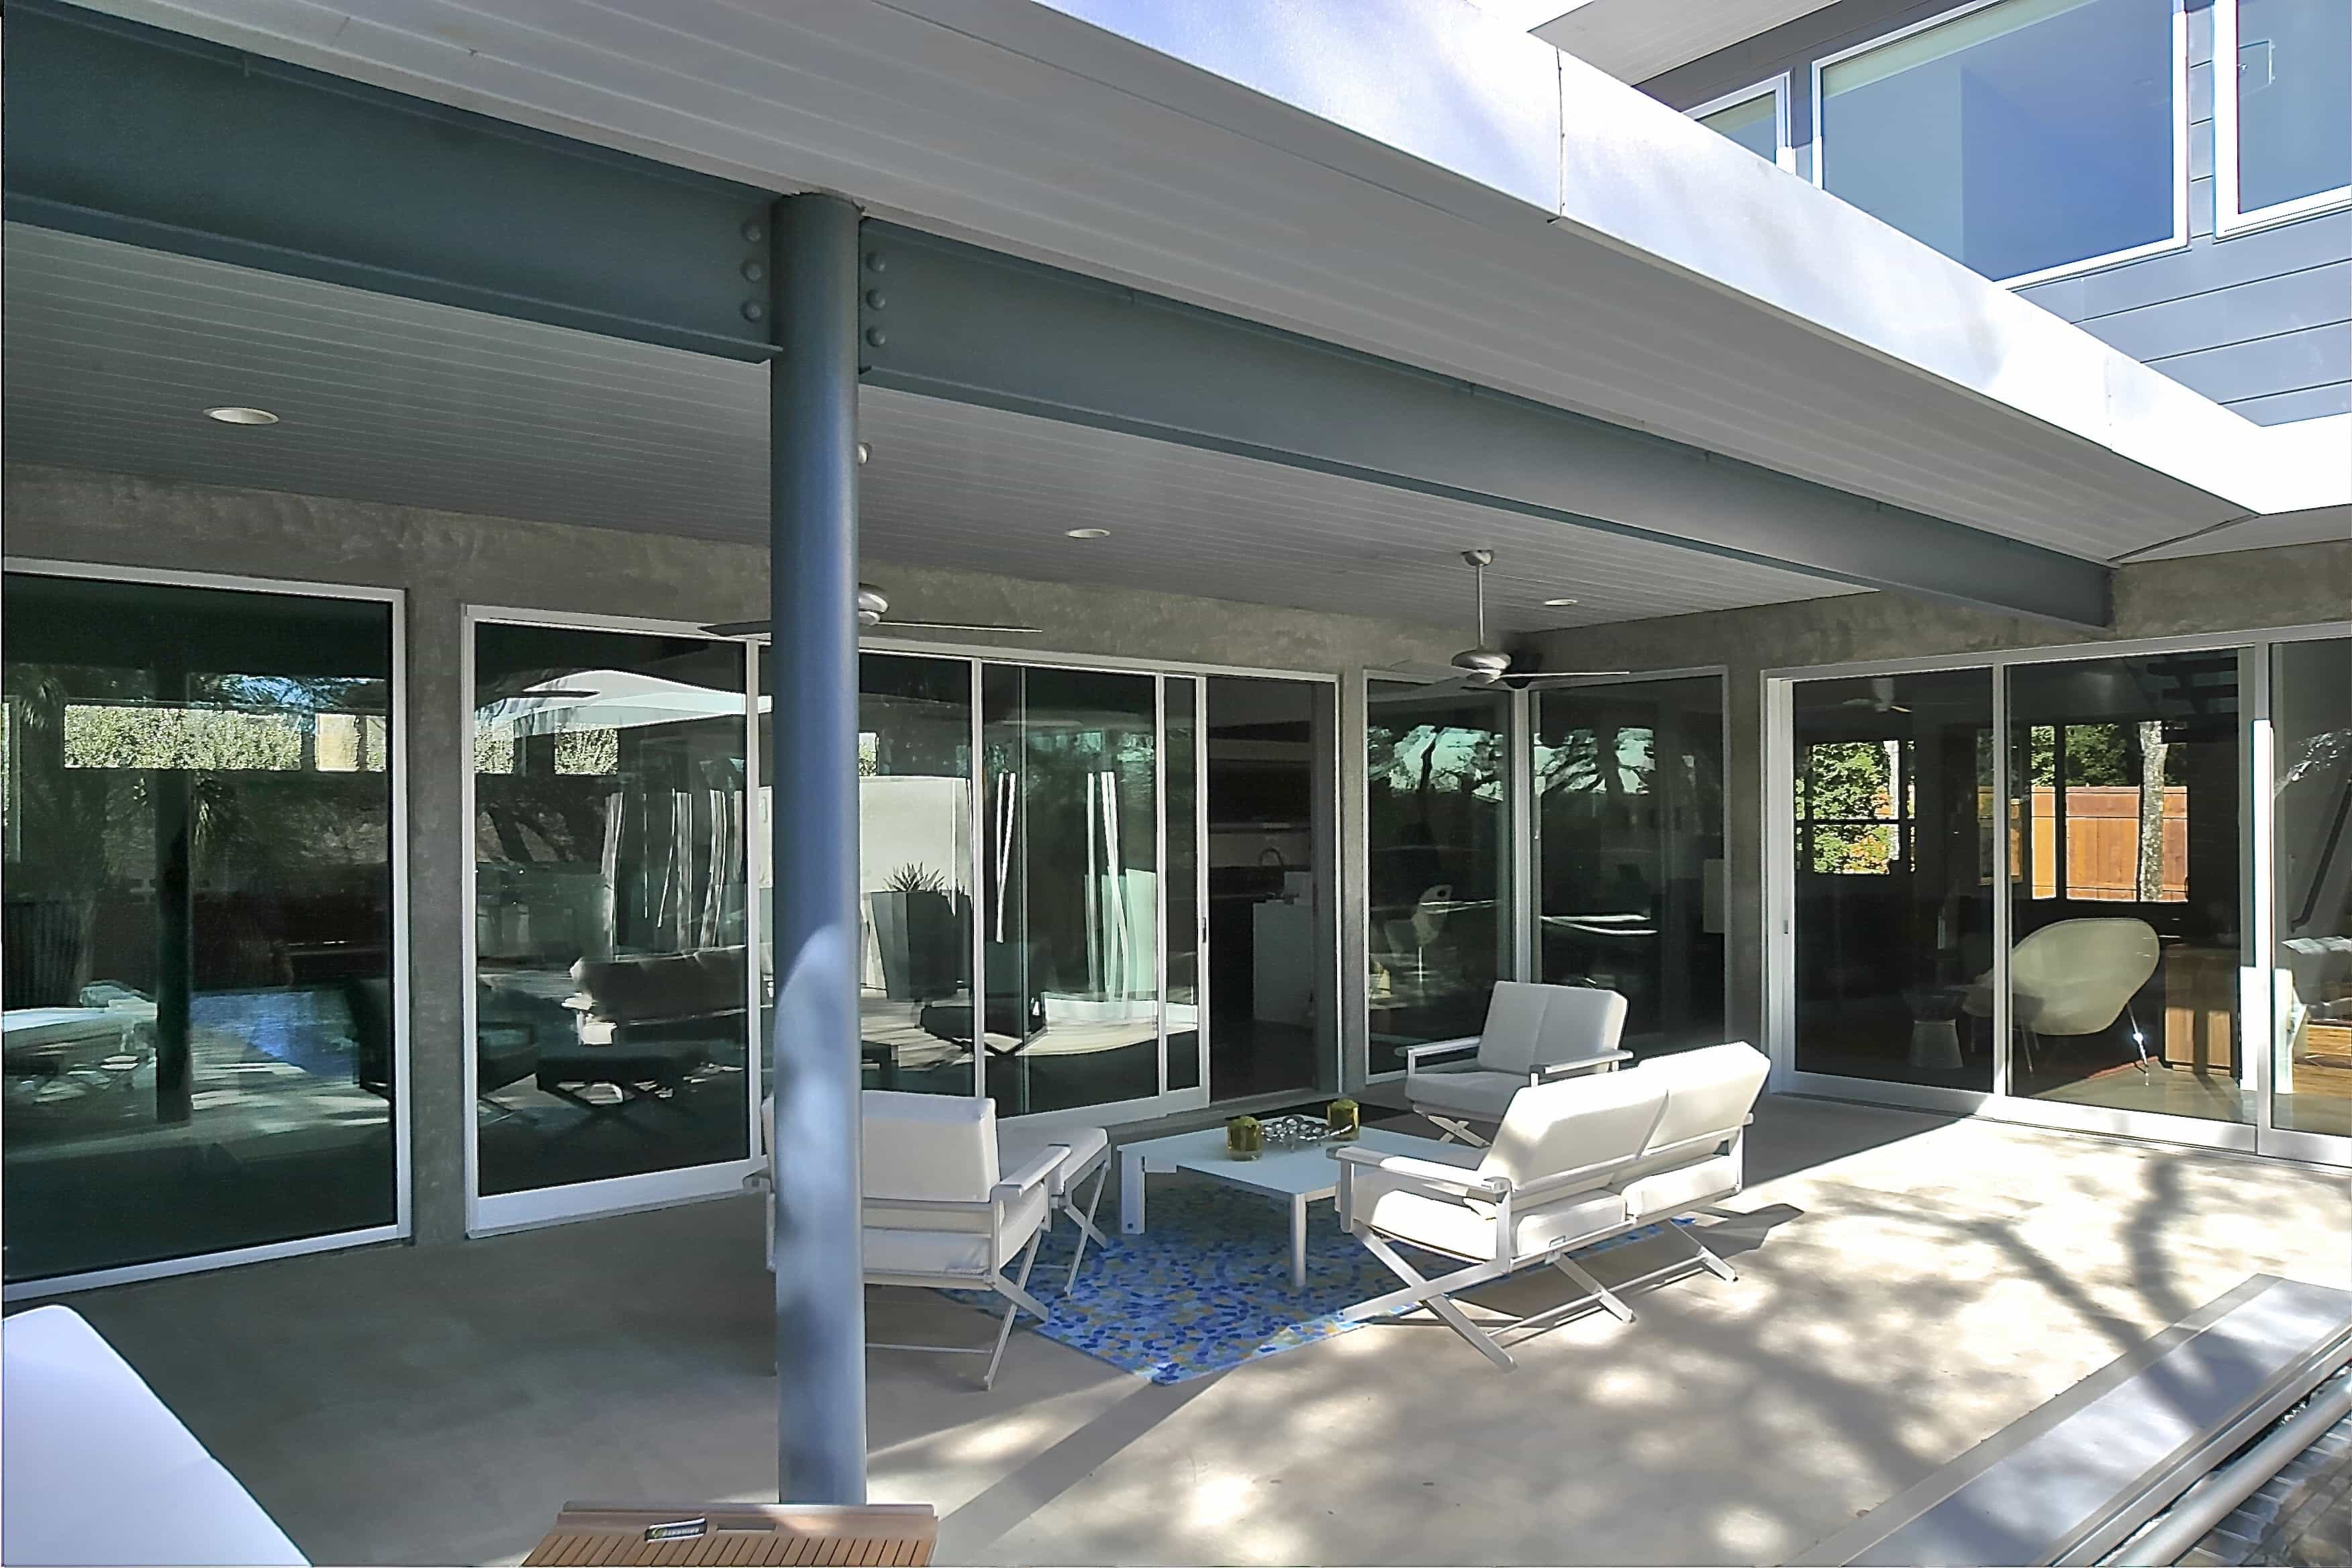 Modern Covered Patio Surrounded By Sliding Glass Doors (Image 16 of 27)